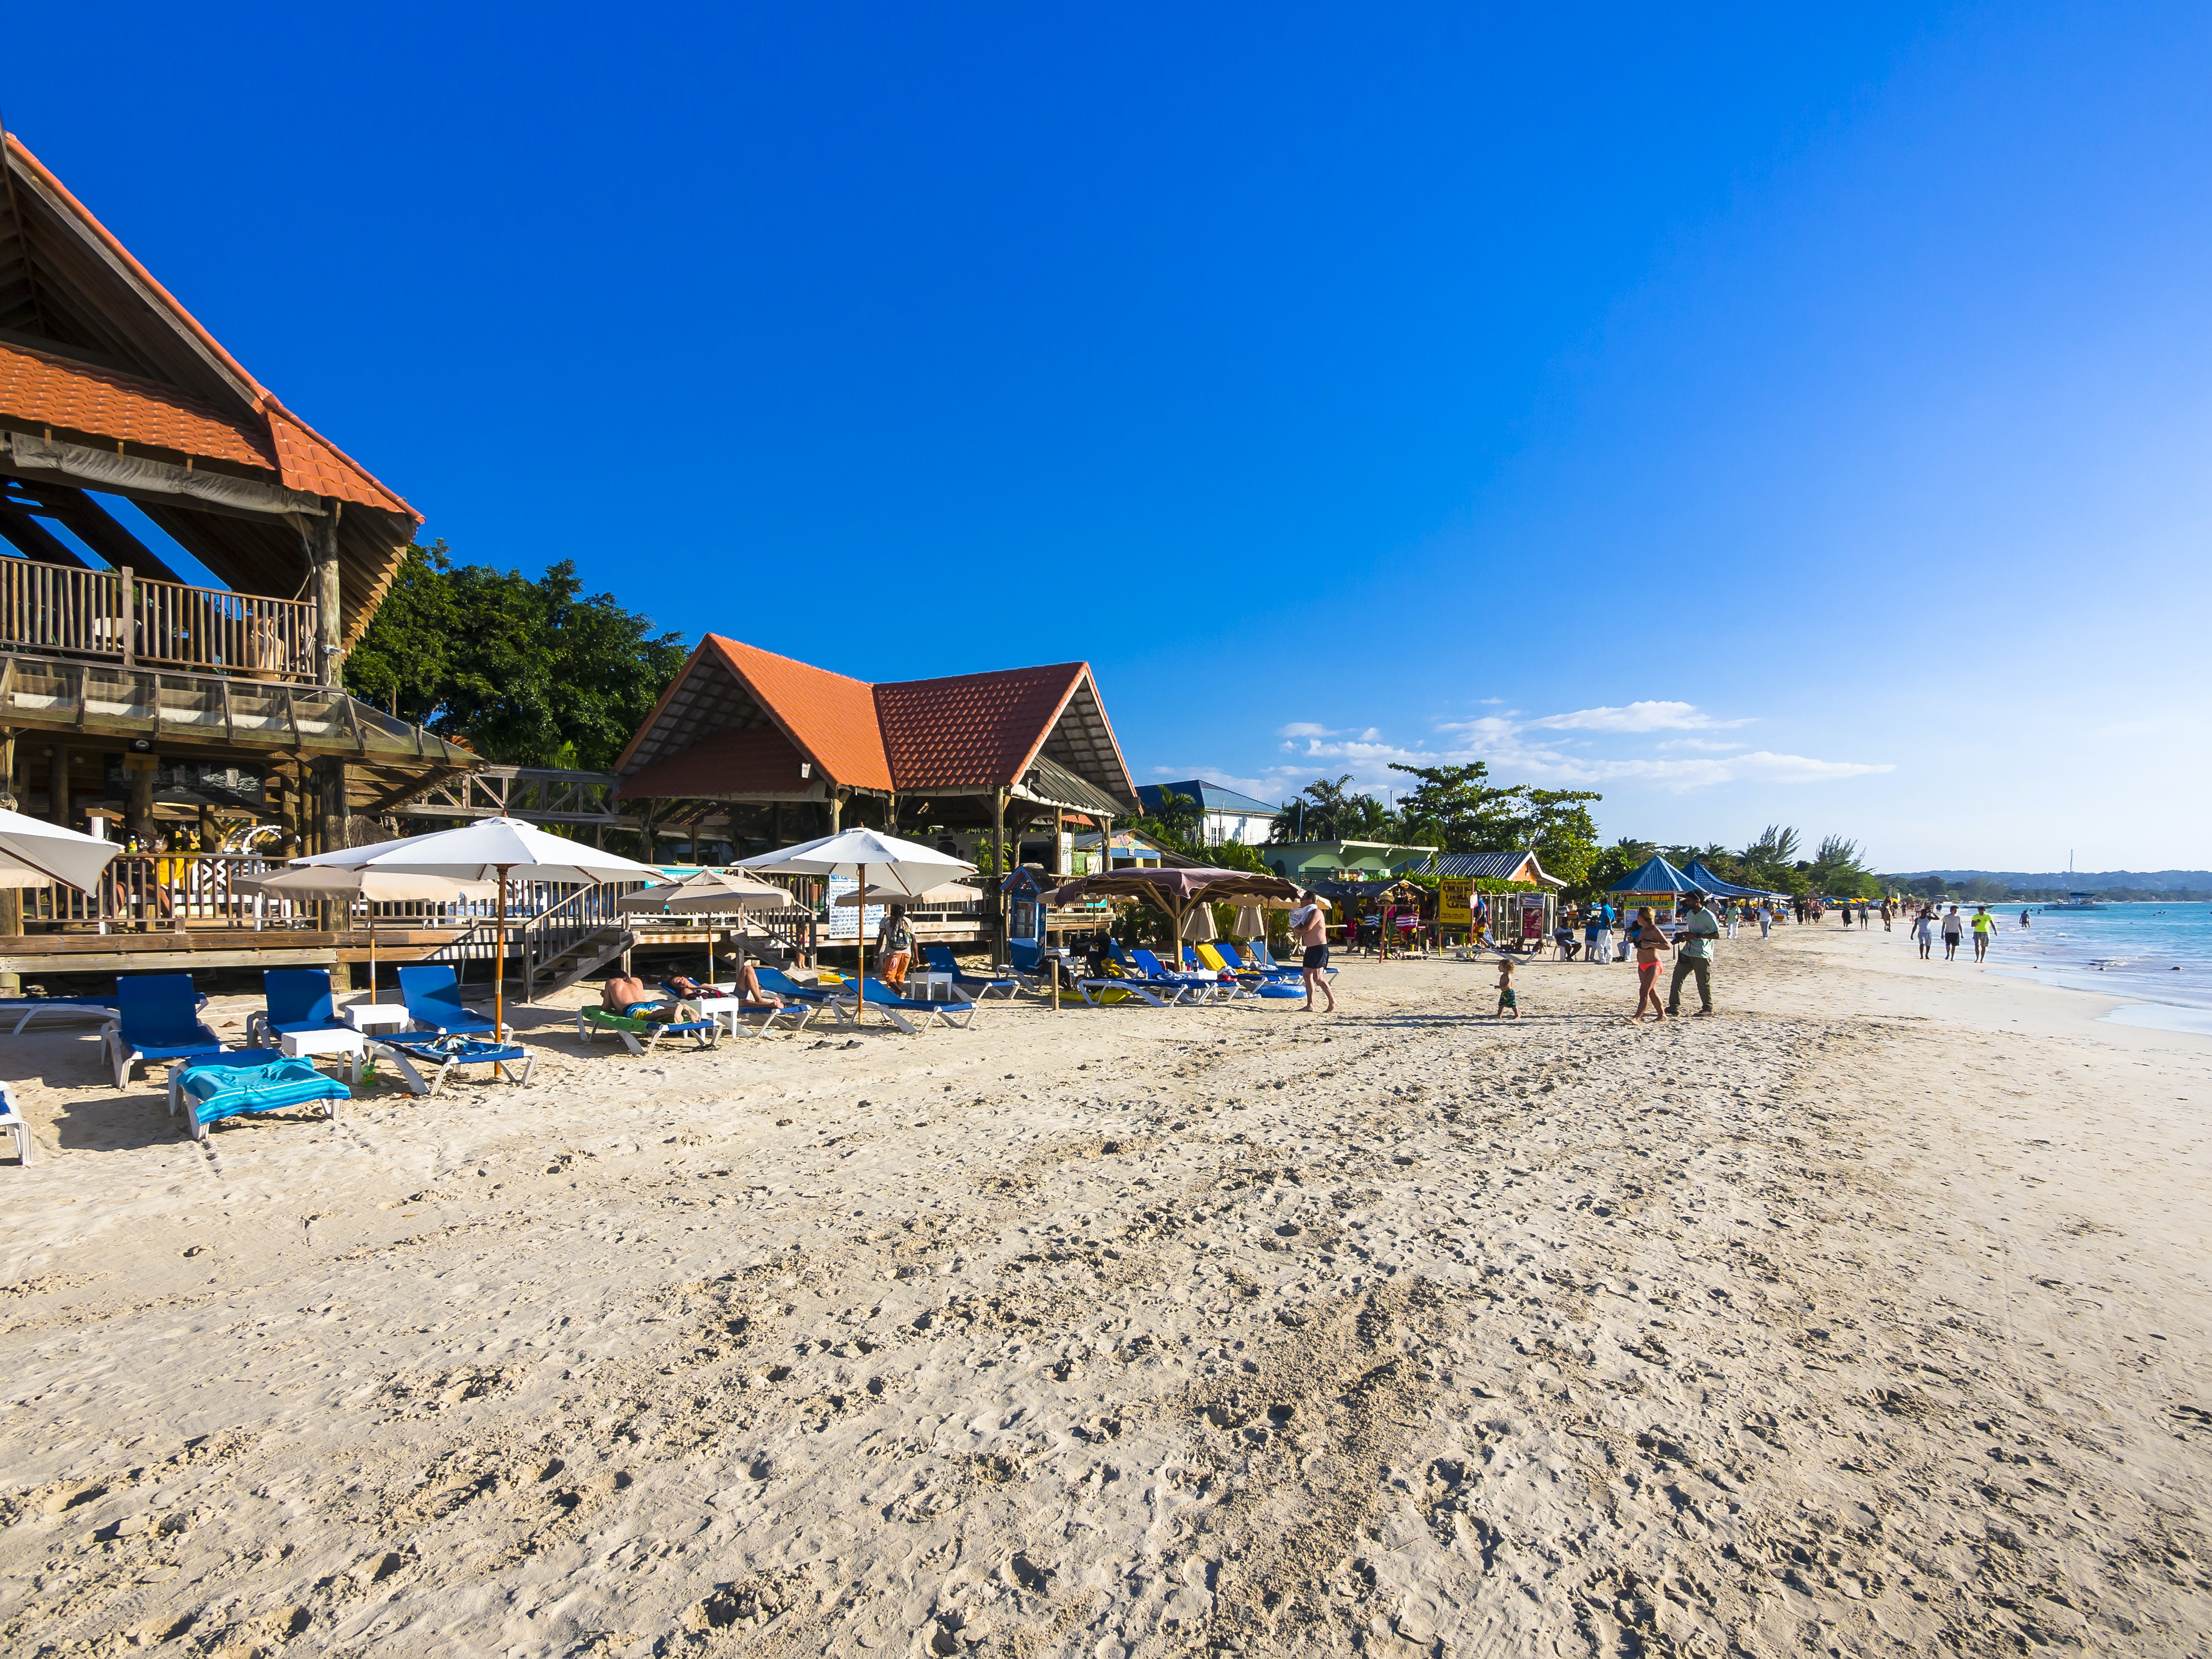 negril amp west coast travel lonely planet